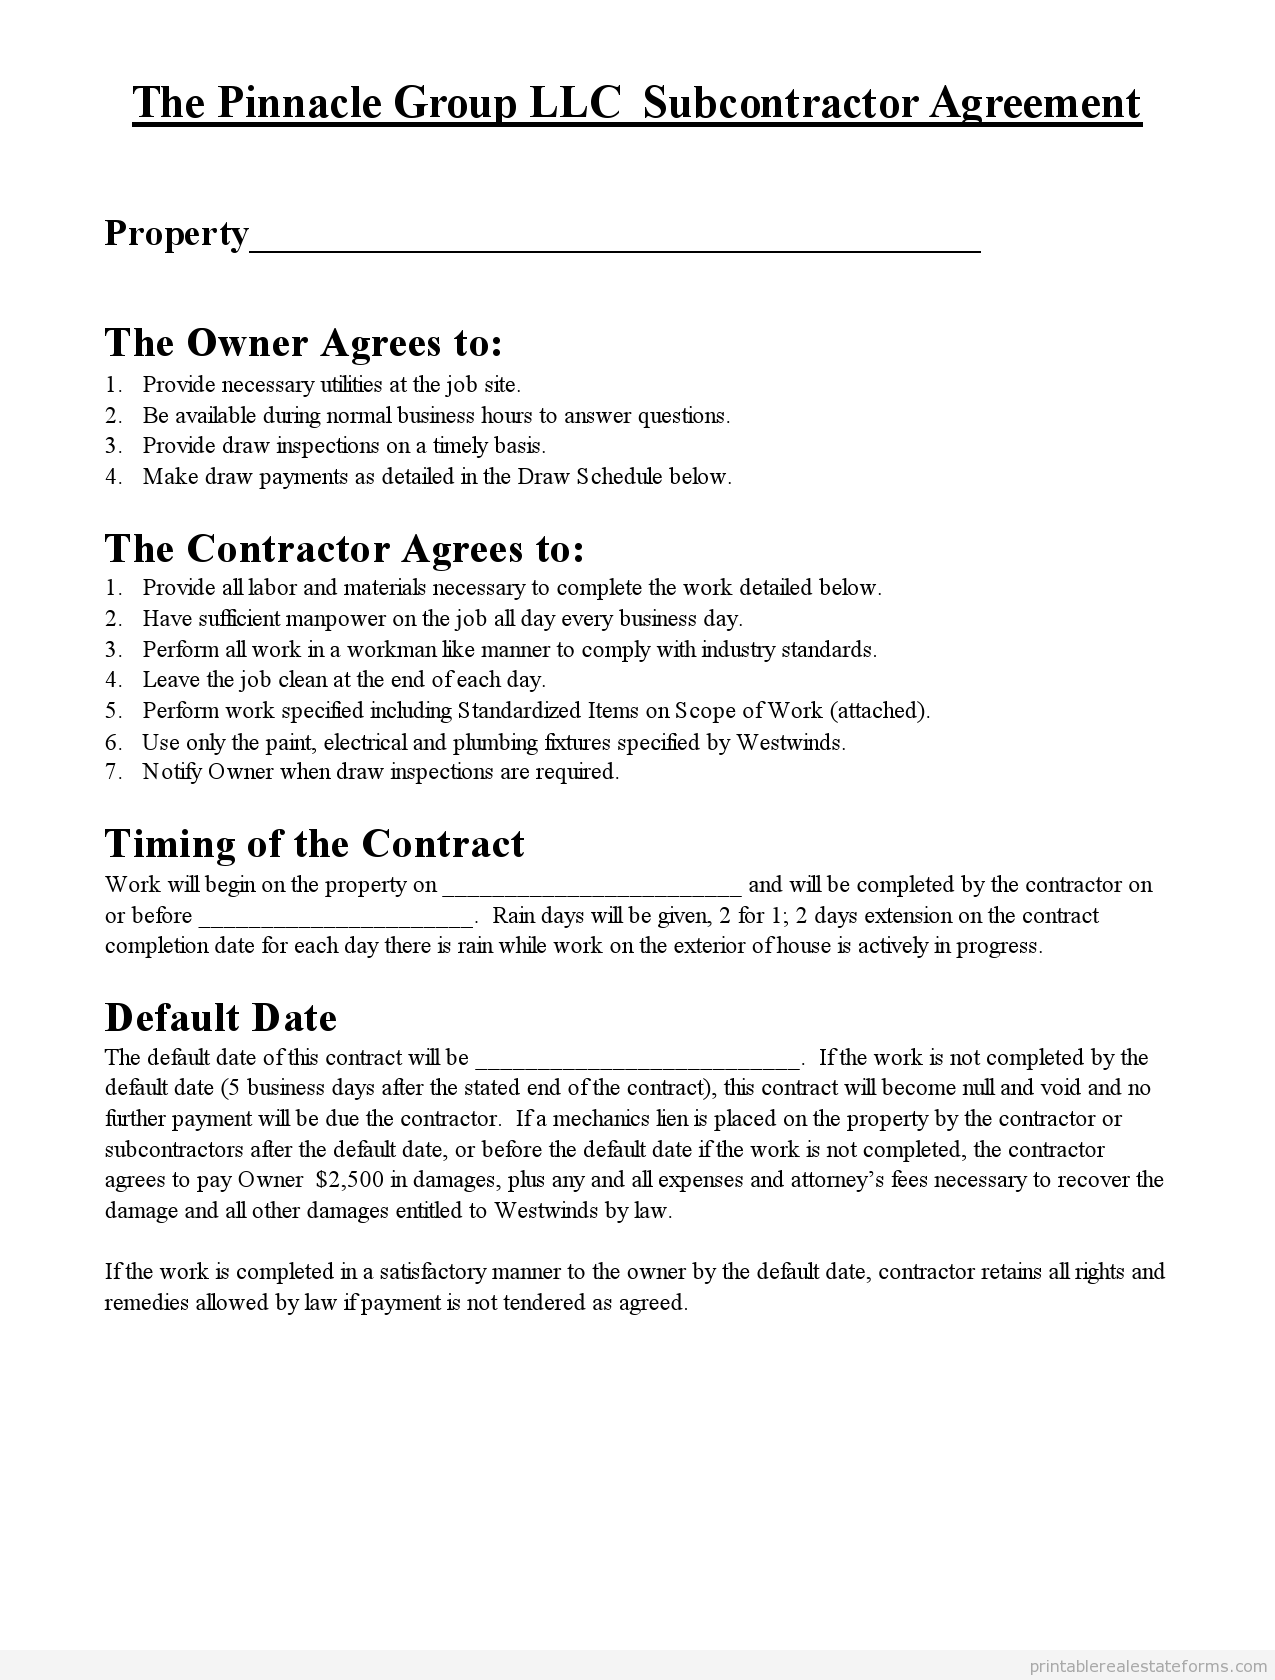 Free printable subcontractor agreement form printable for Subcontractors agreement template